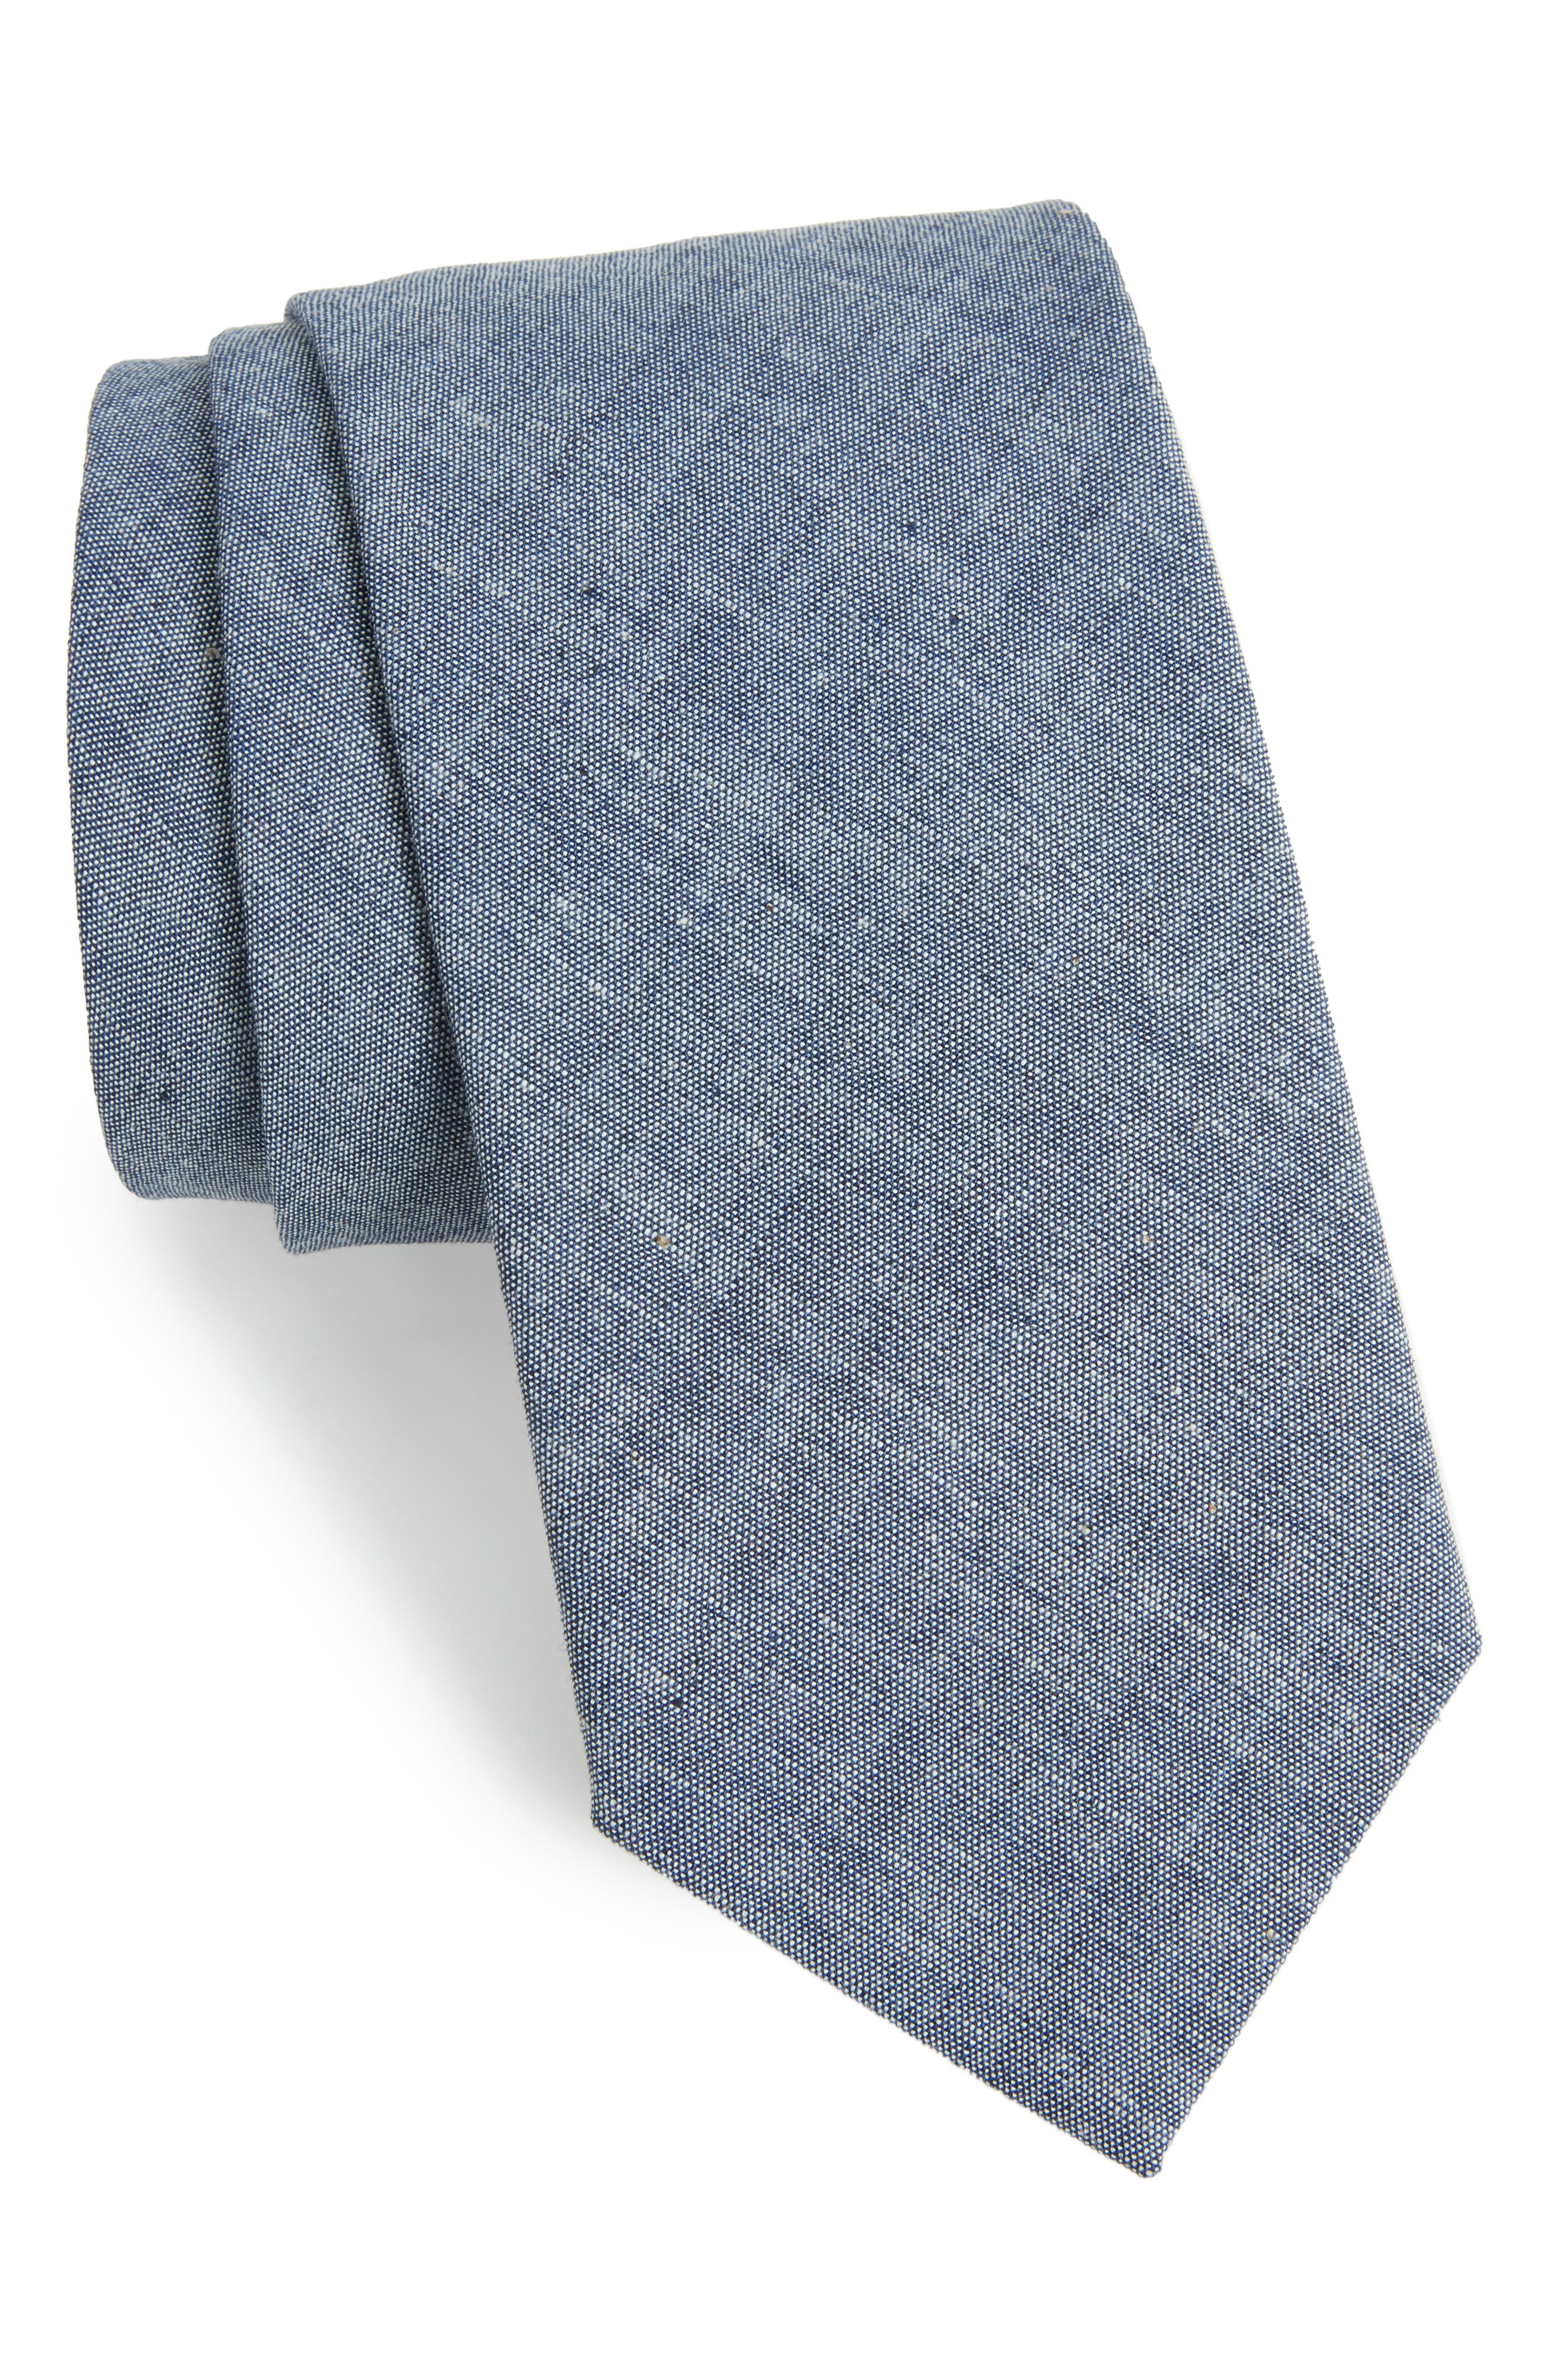 Chambray Cotton Tie,                         Main,                         color, CHAMBRAY